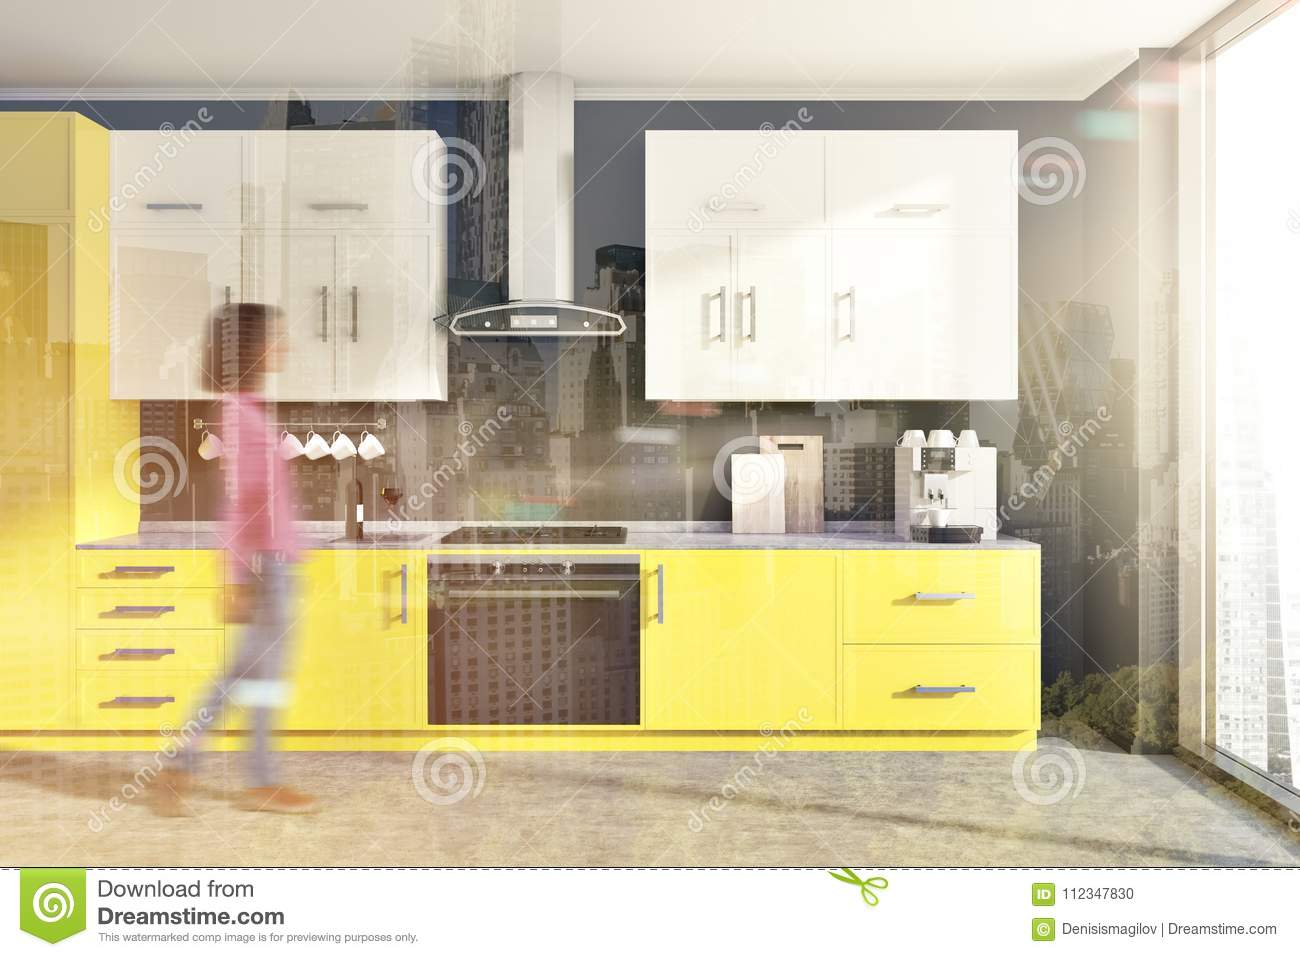 Modern kitchen interior with yellow and white counters black walls and a concrete floor a woman 3d rendering toned image double exposure blurred